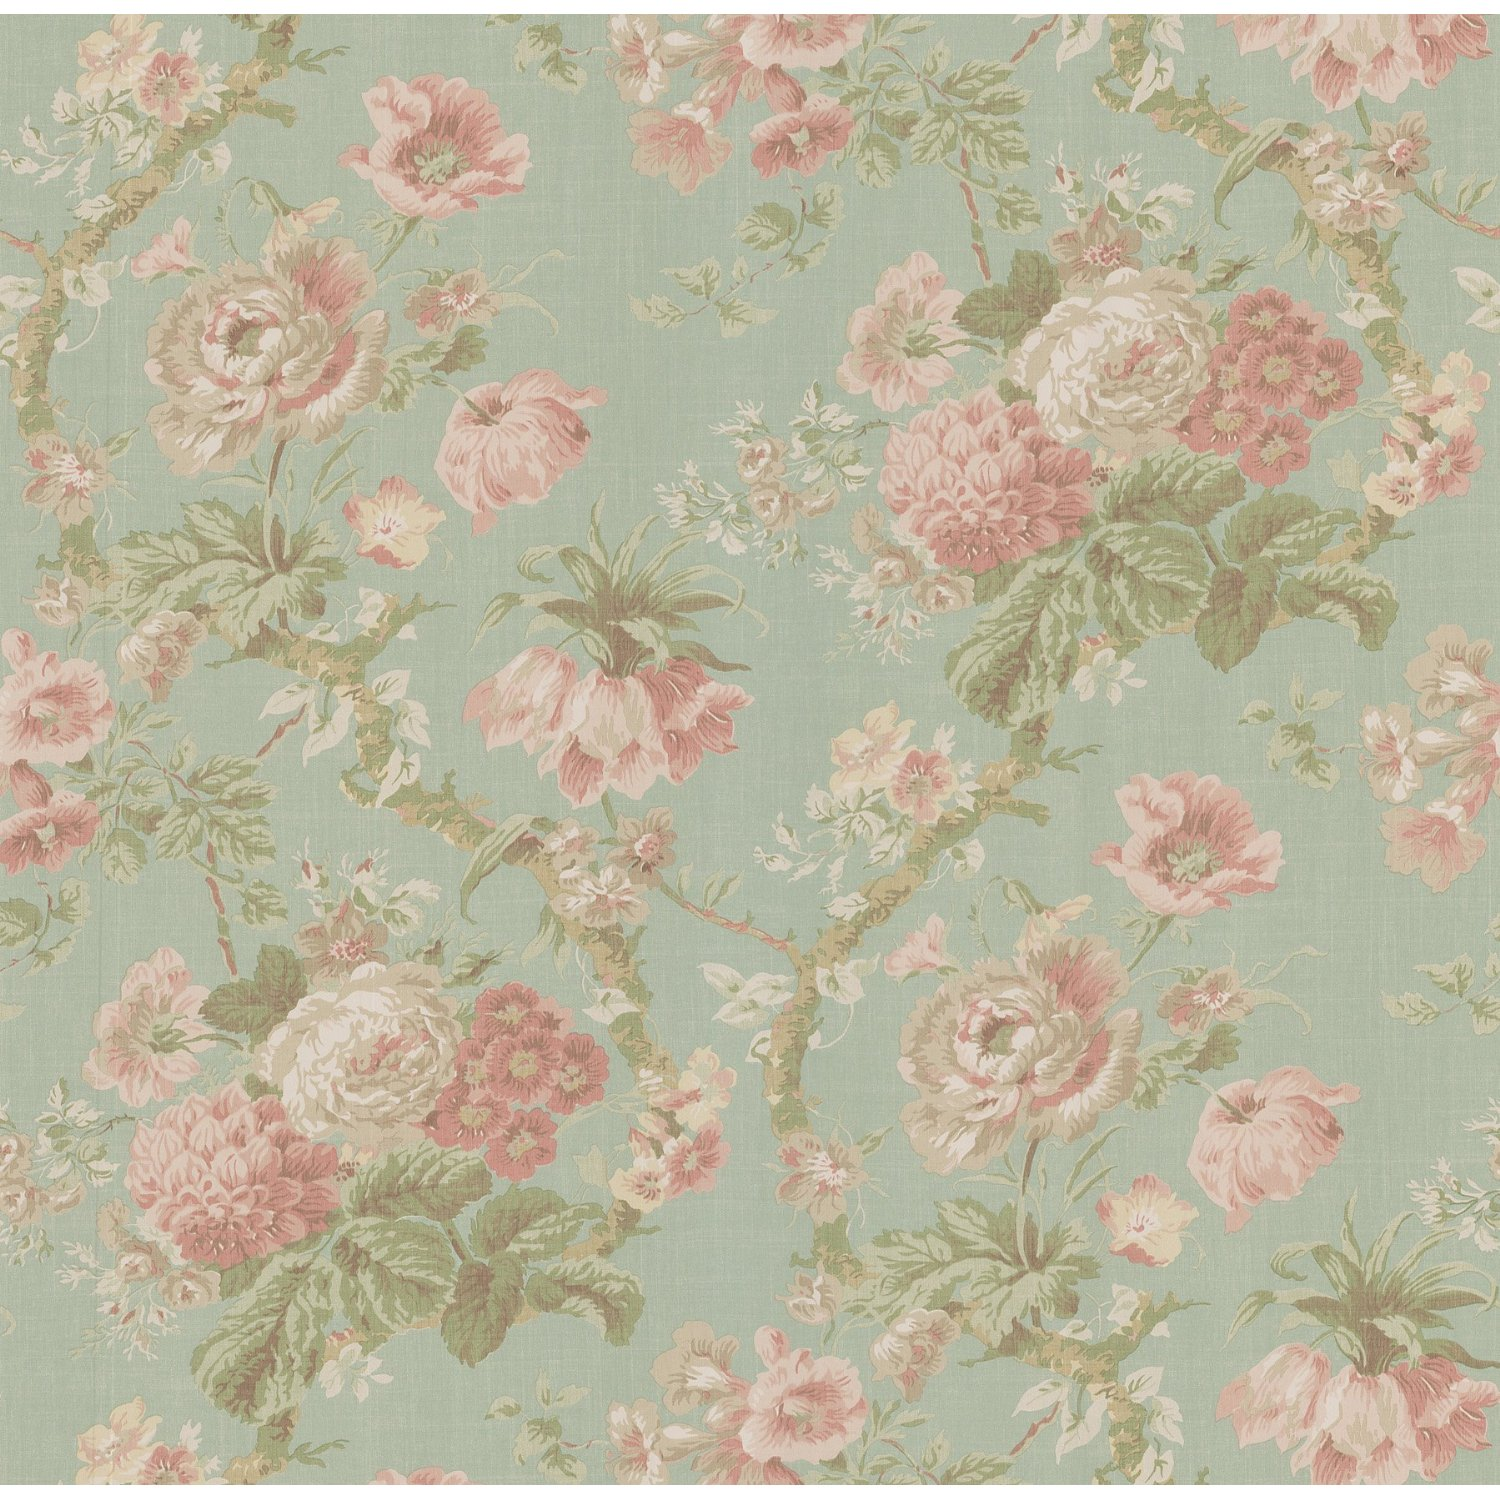 Floral Print Wallpaper Tumblr 1500x1500